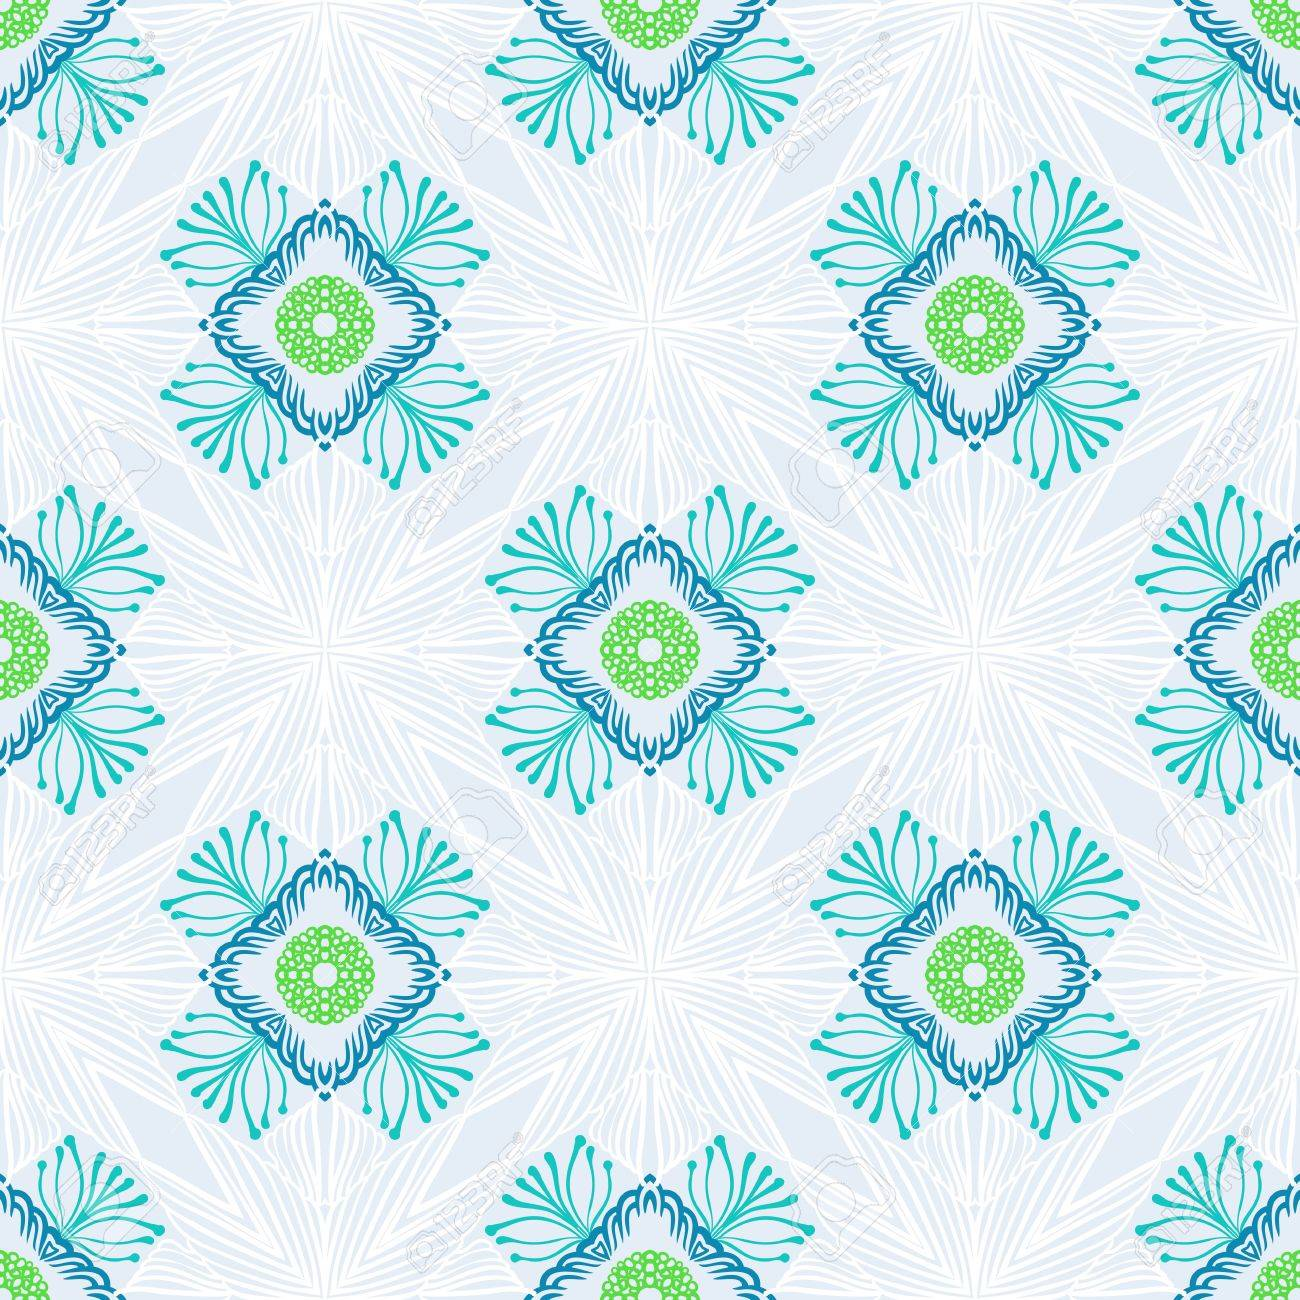 Simple Floral Geometric Seamless Vector Texture Background For